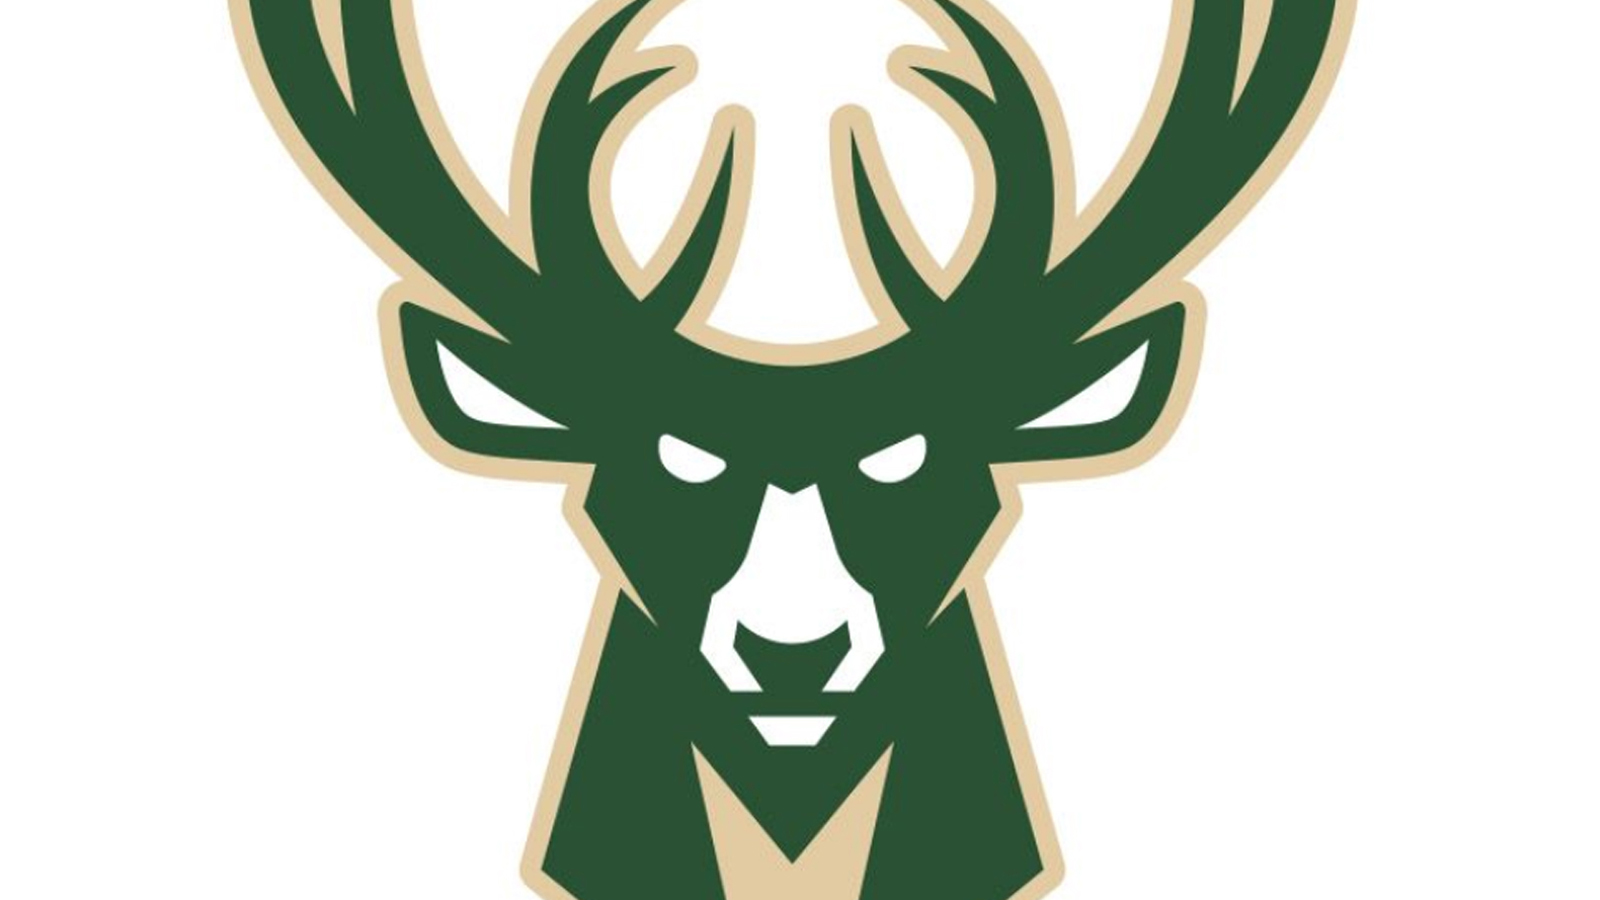 Bucks unveil new green and cream logo and color scheme.